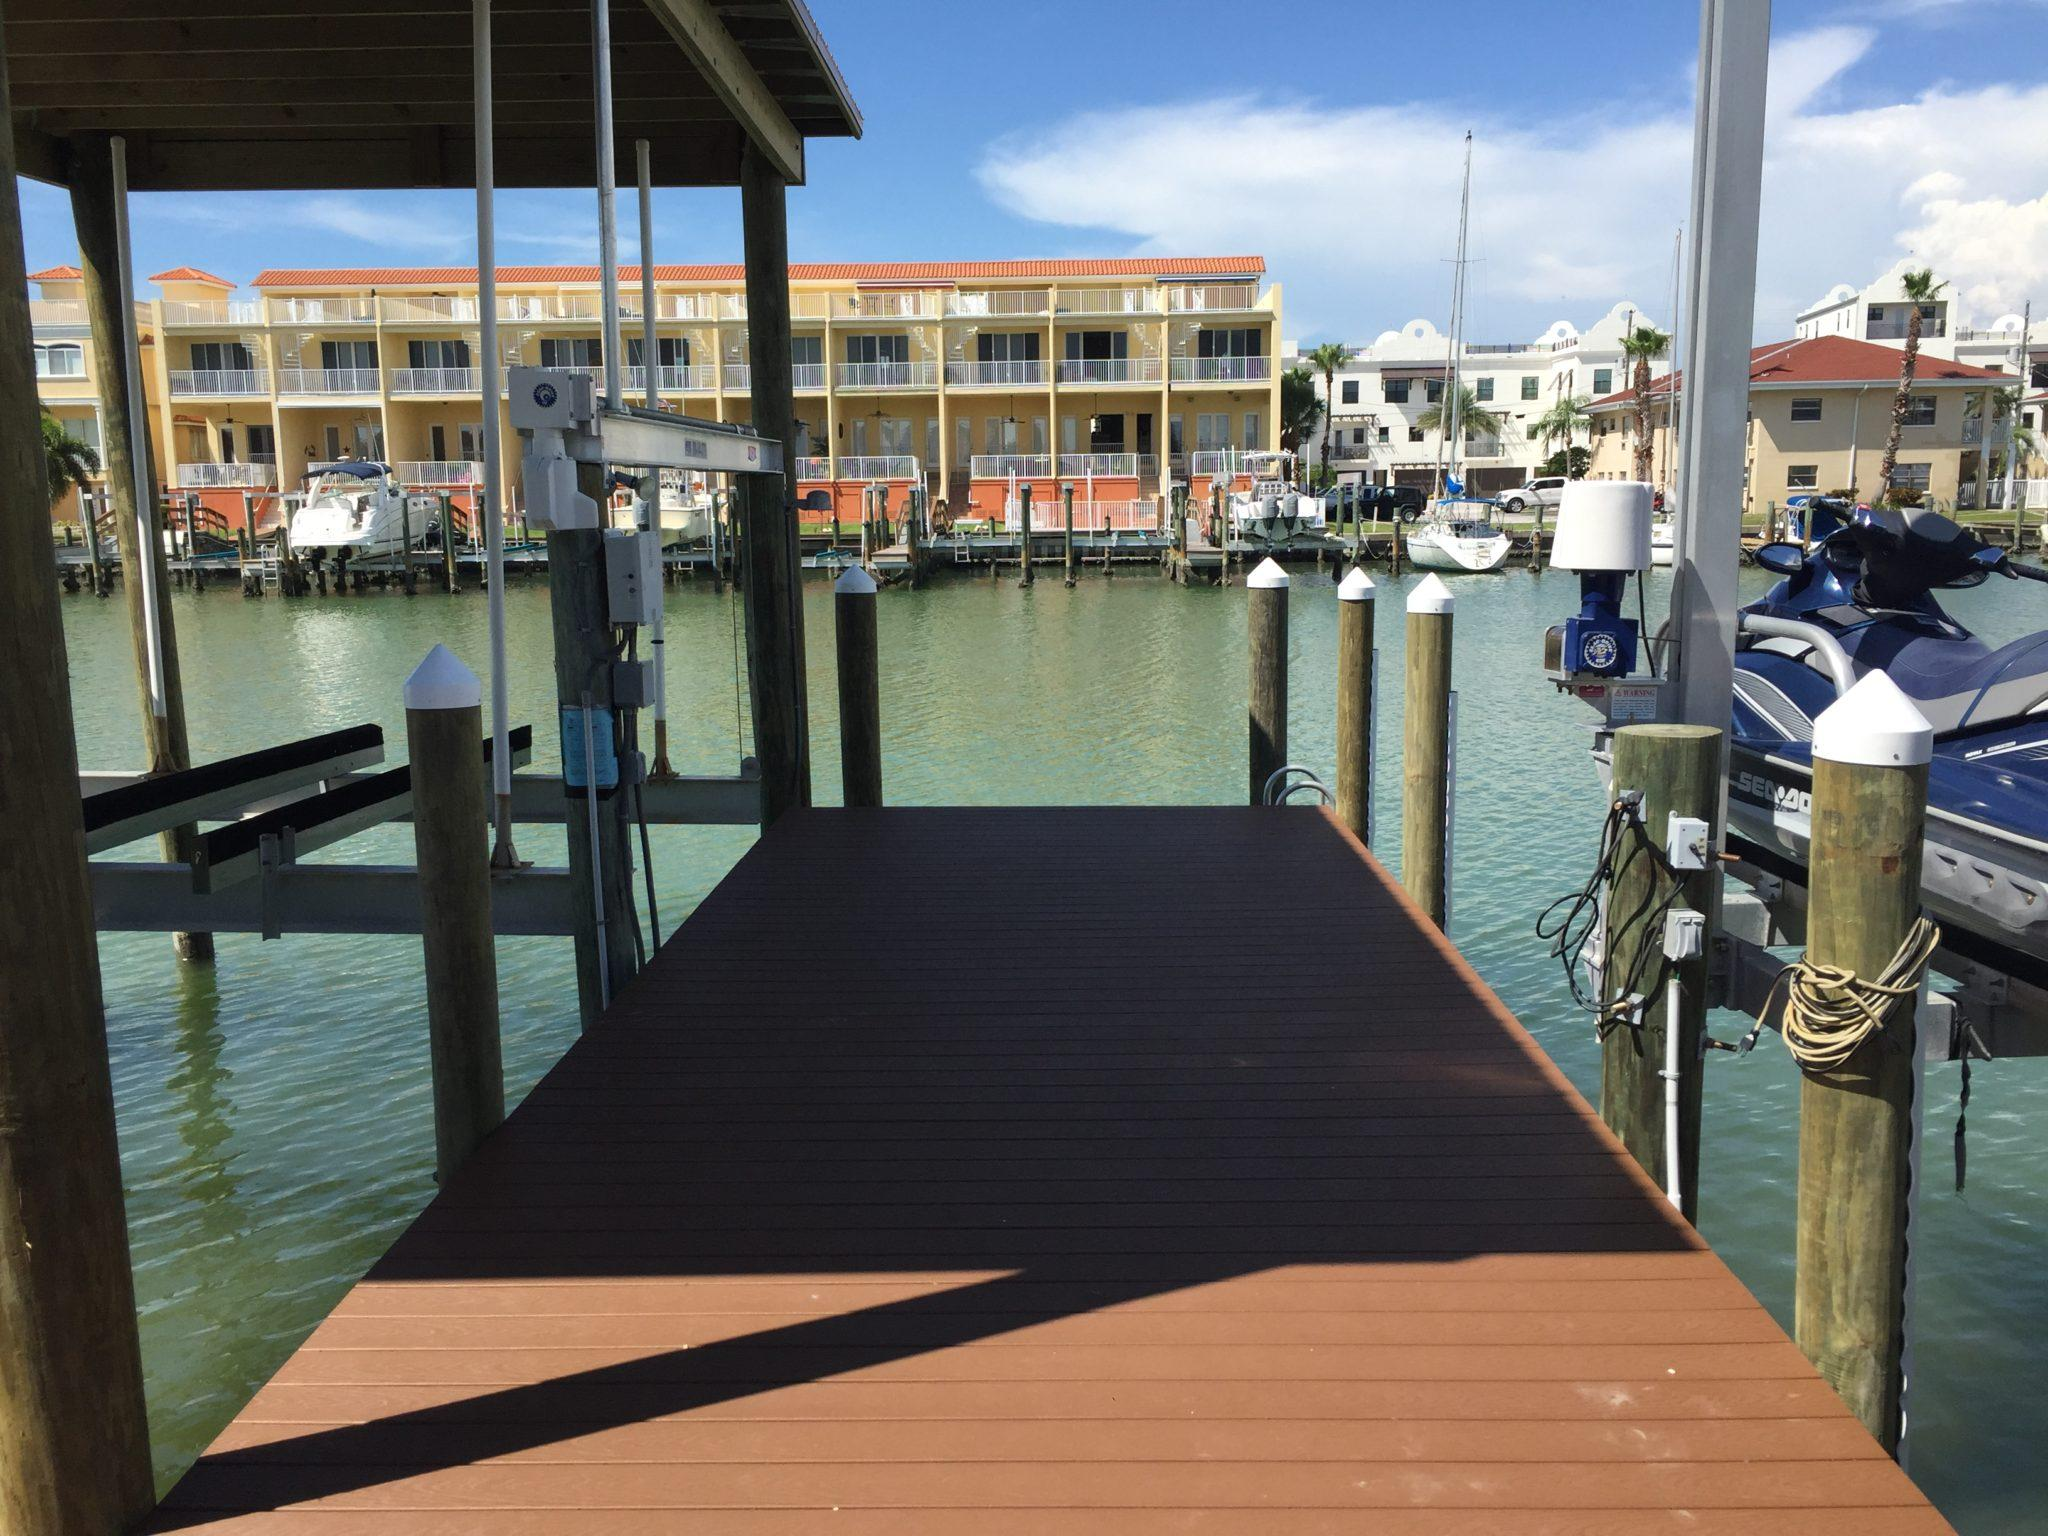 Stationary dock with composite Trex decking with a roof and jet ski lift on the water